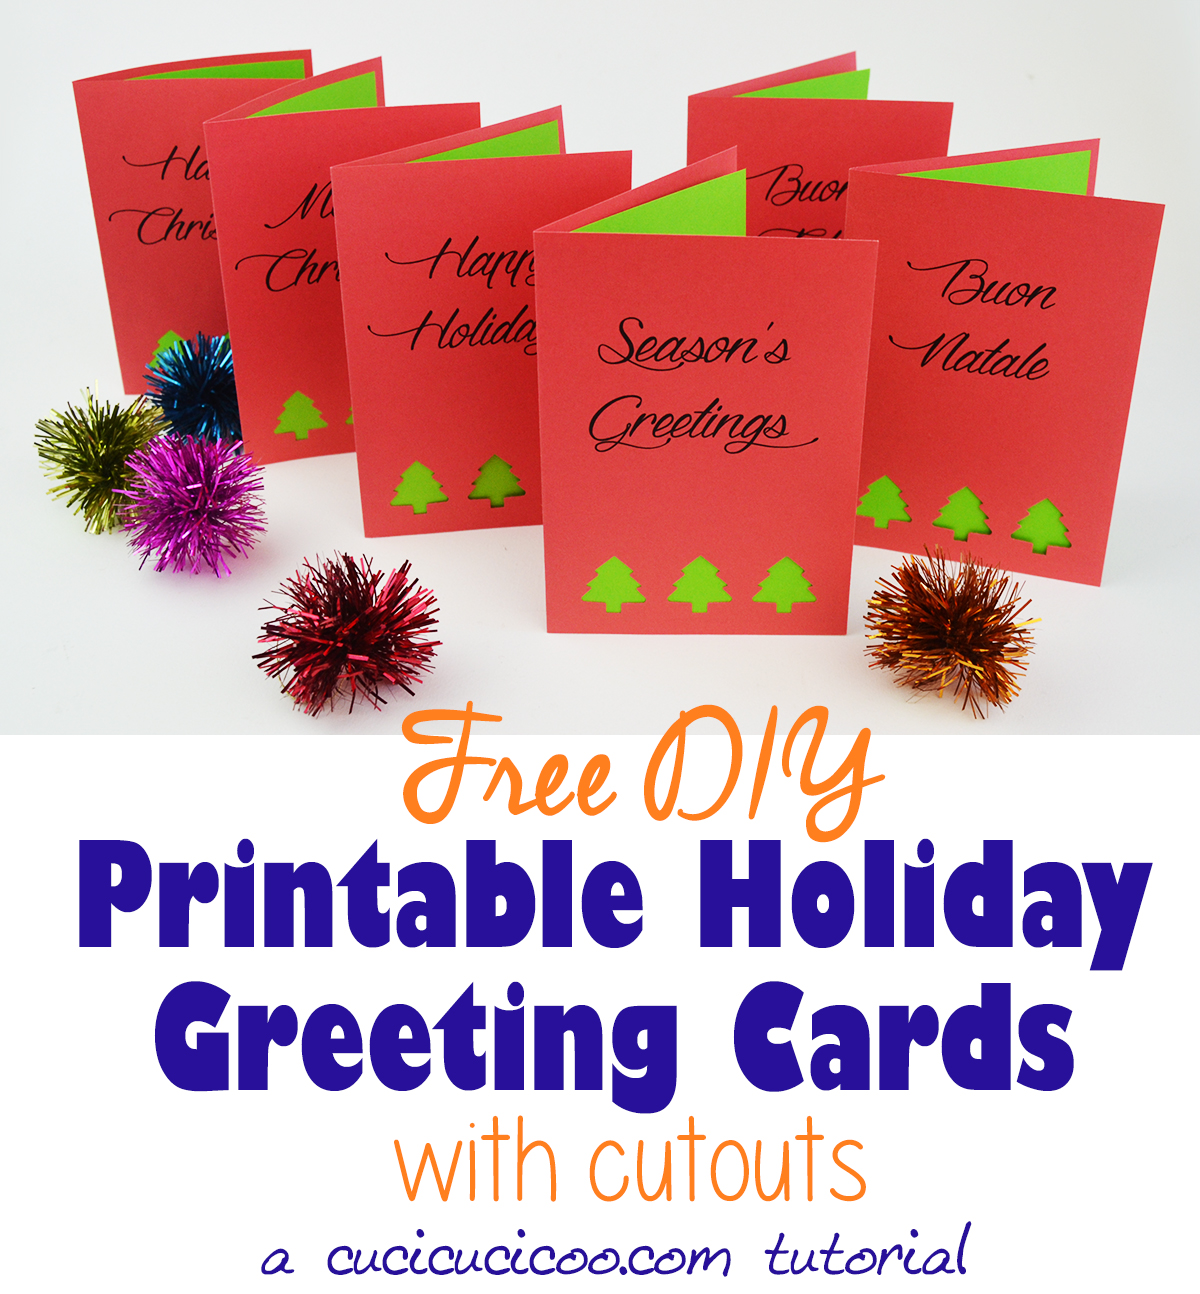 graphic regarding Free Printable Christmas Cutouts called Do-it-yourself Greetings: Absolutely free Printable Getaway Playing cards with Cutouts